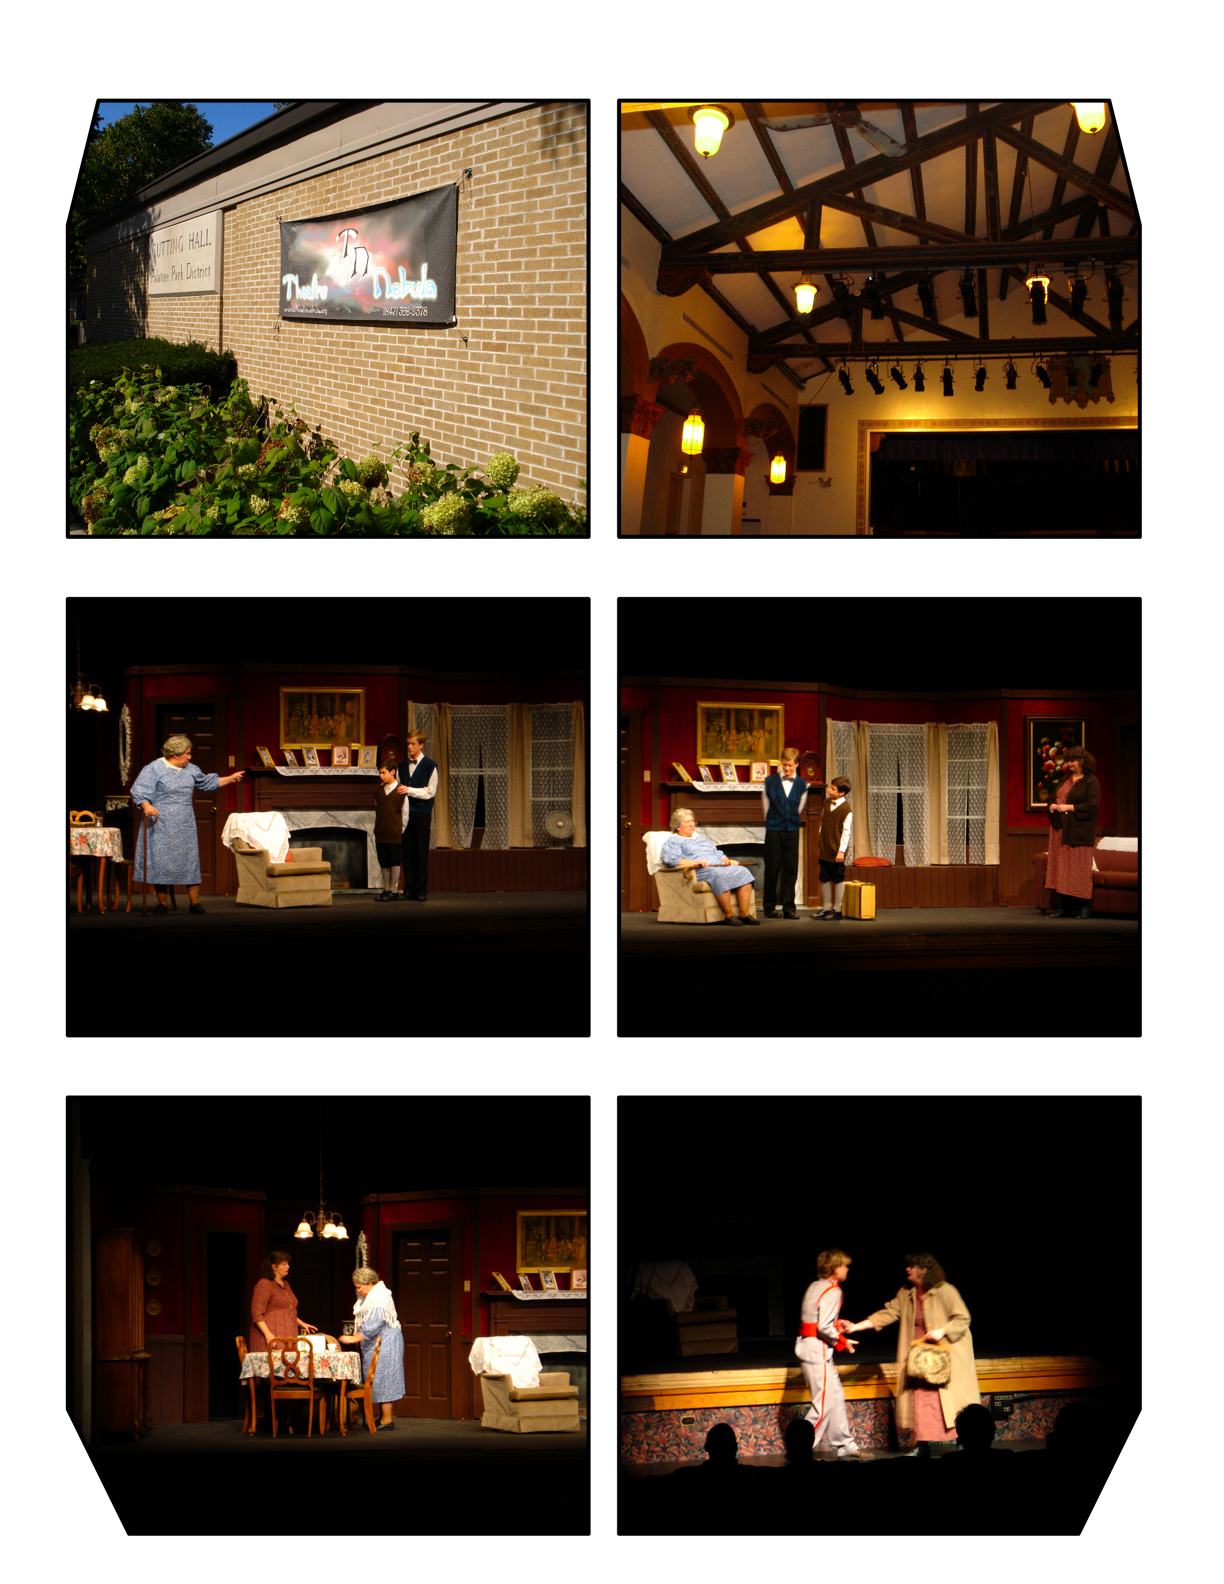 shots of community theater in action. hear it - smell it. photos by christopher brinckerhoff.